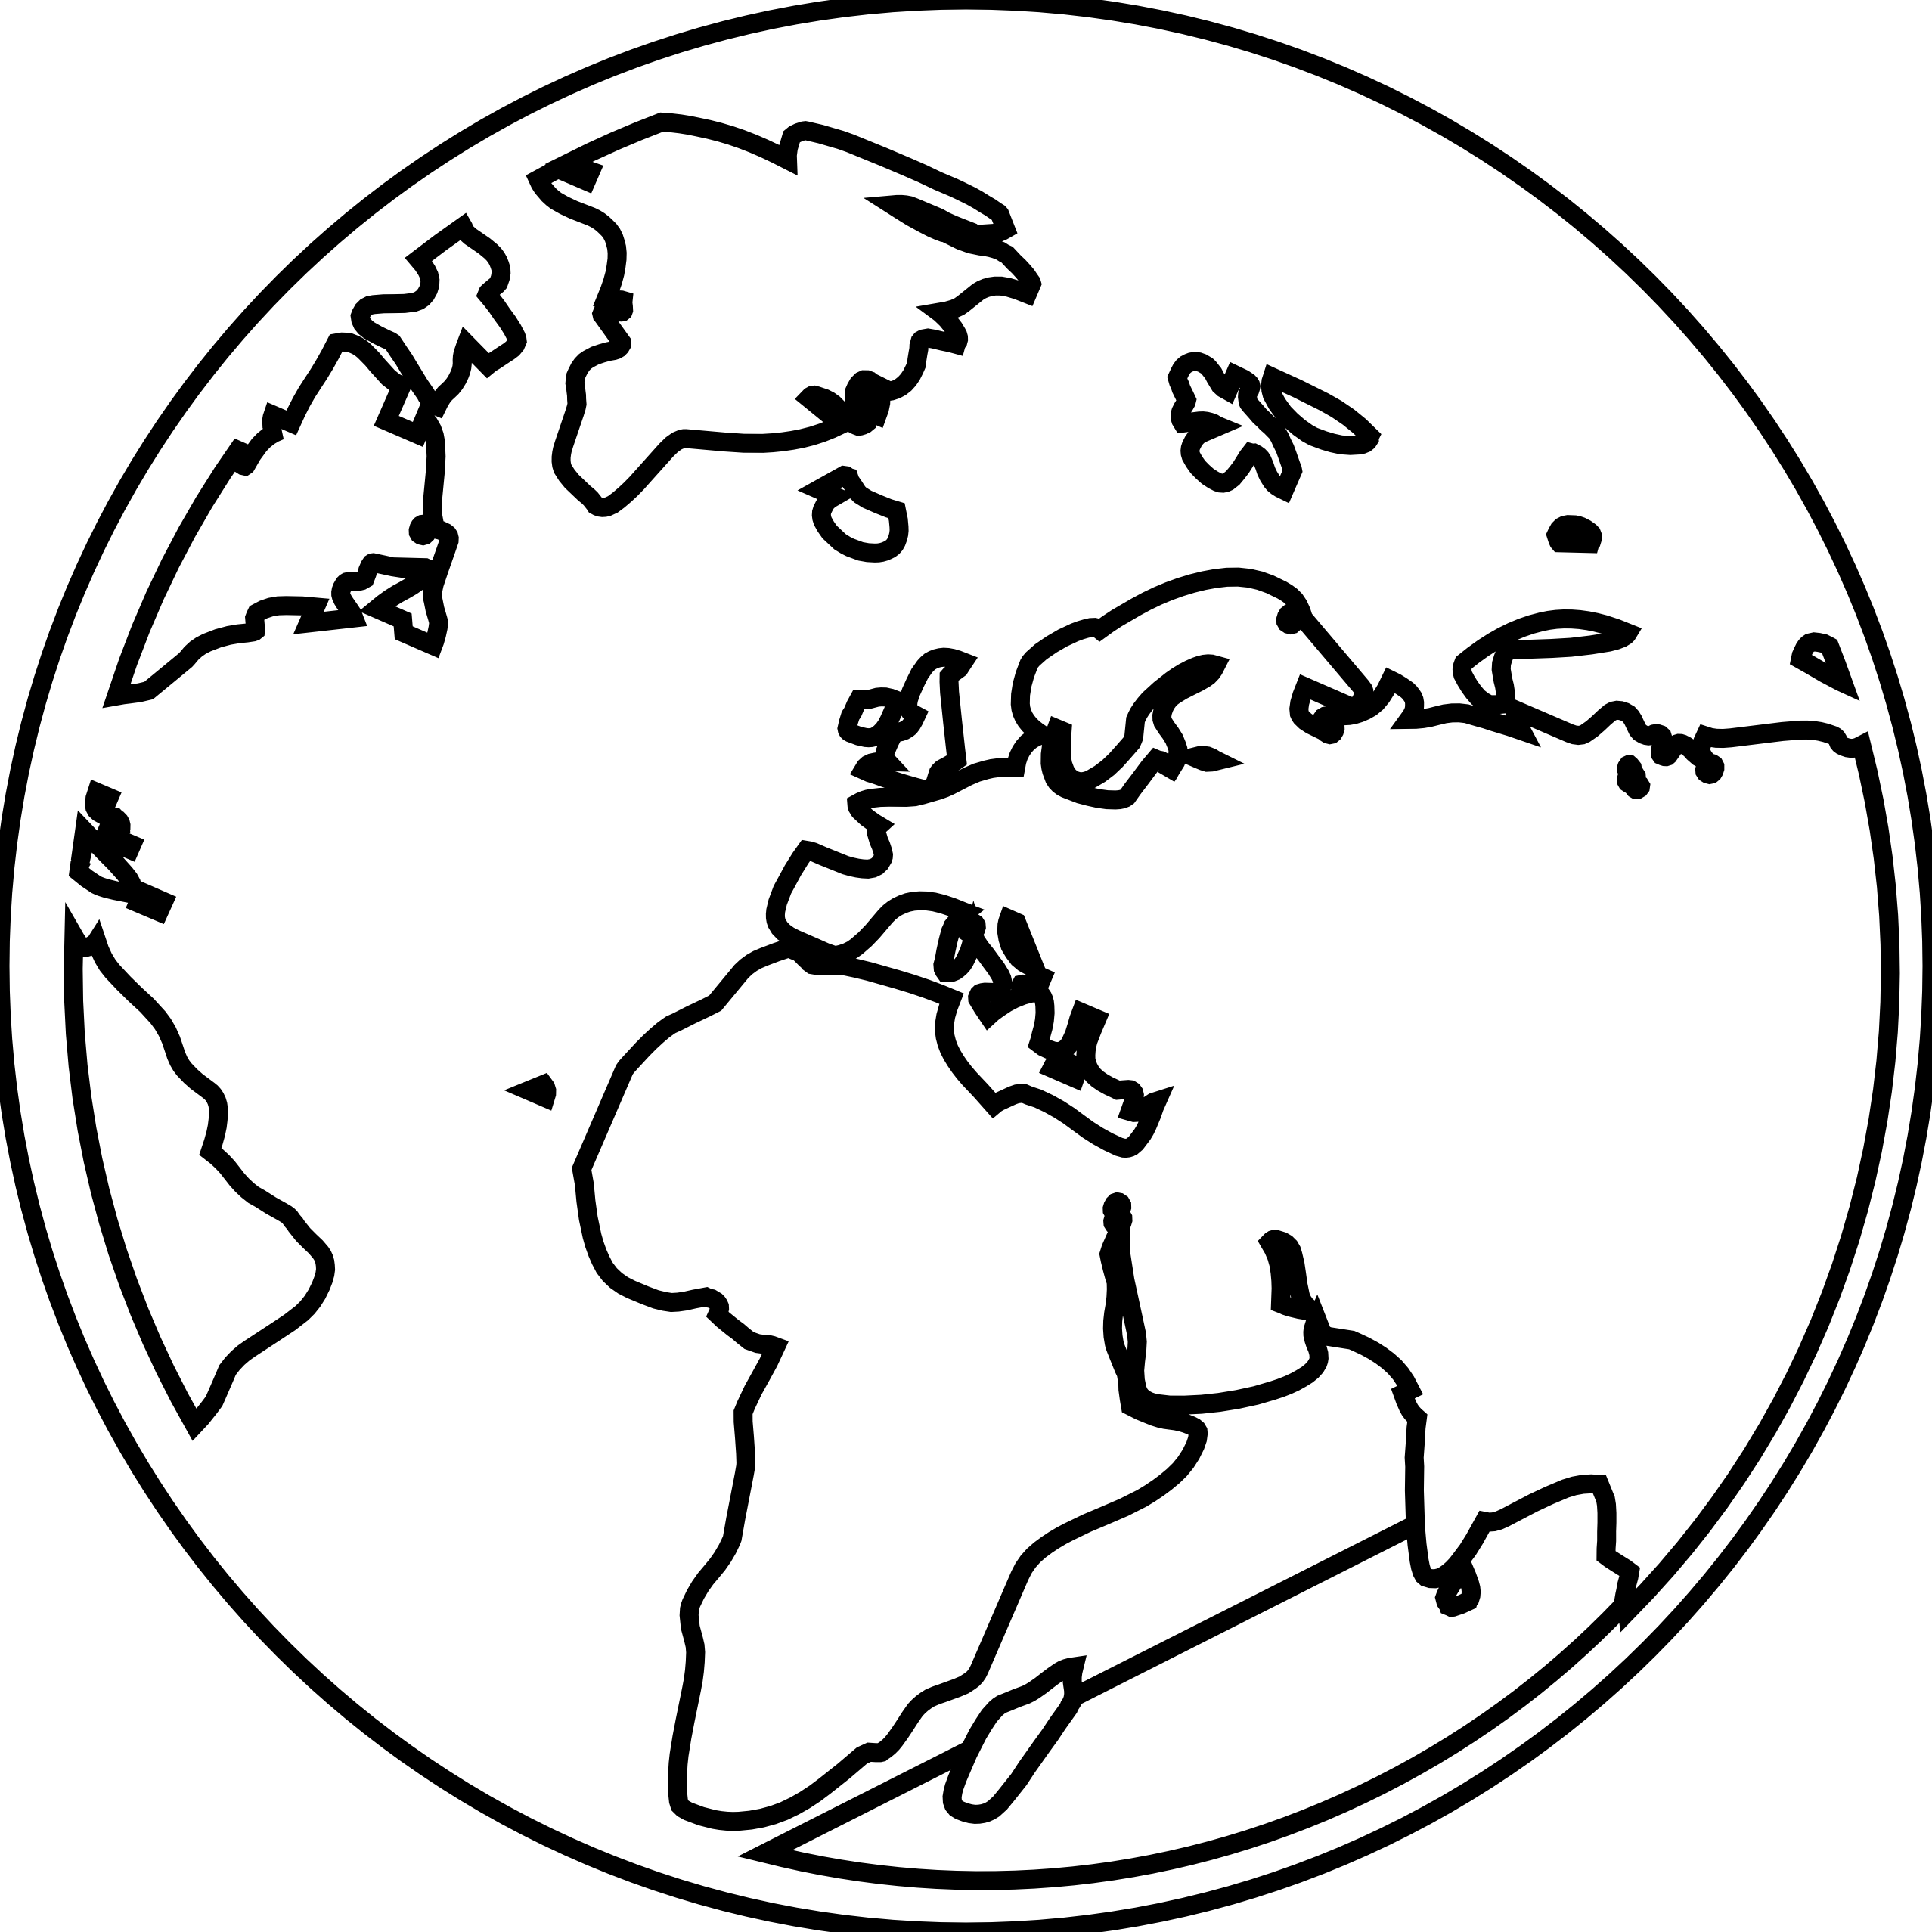 Philippines drawing earth. Clipart at getdrawings com